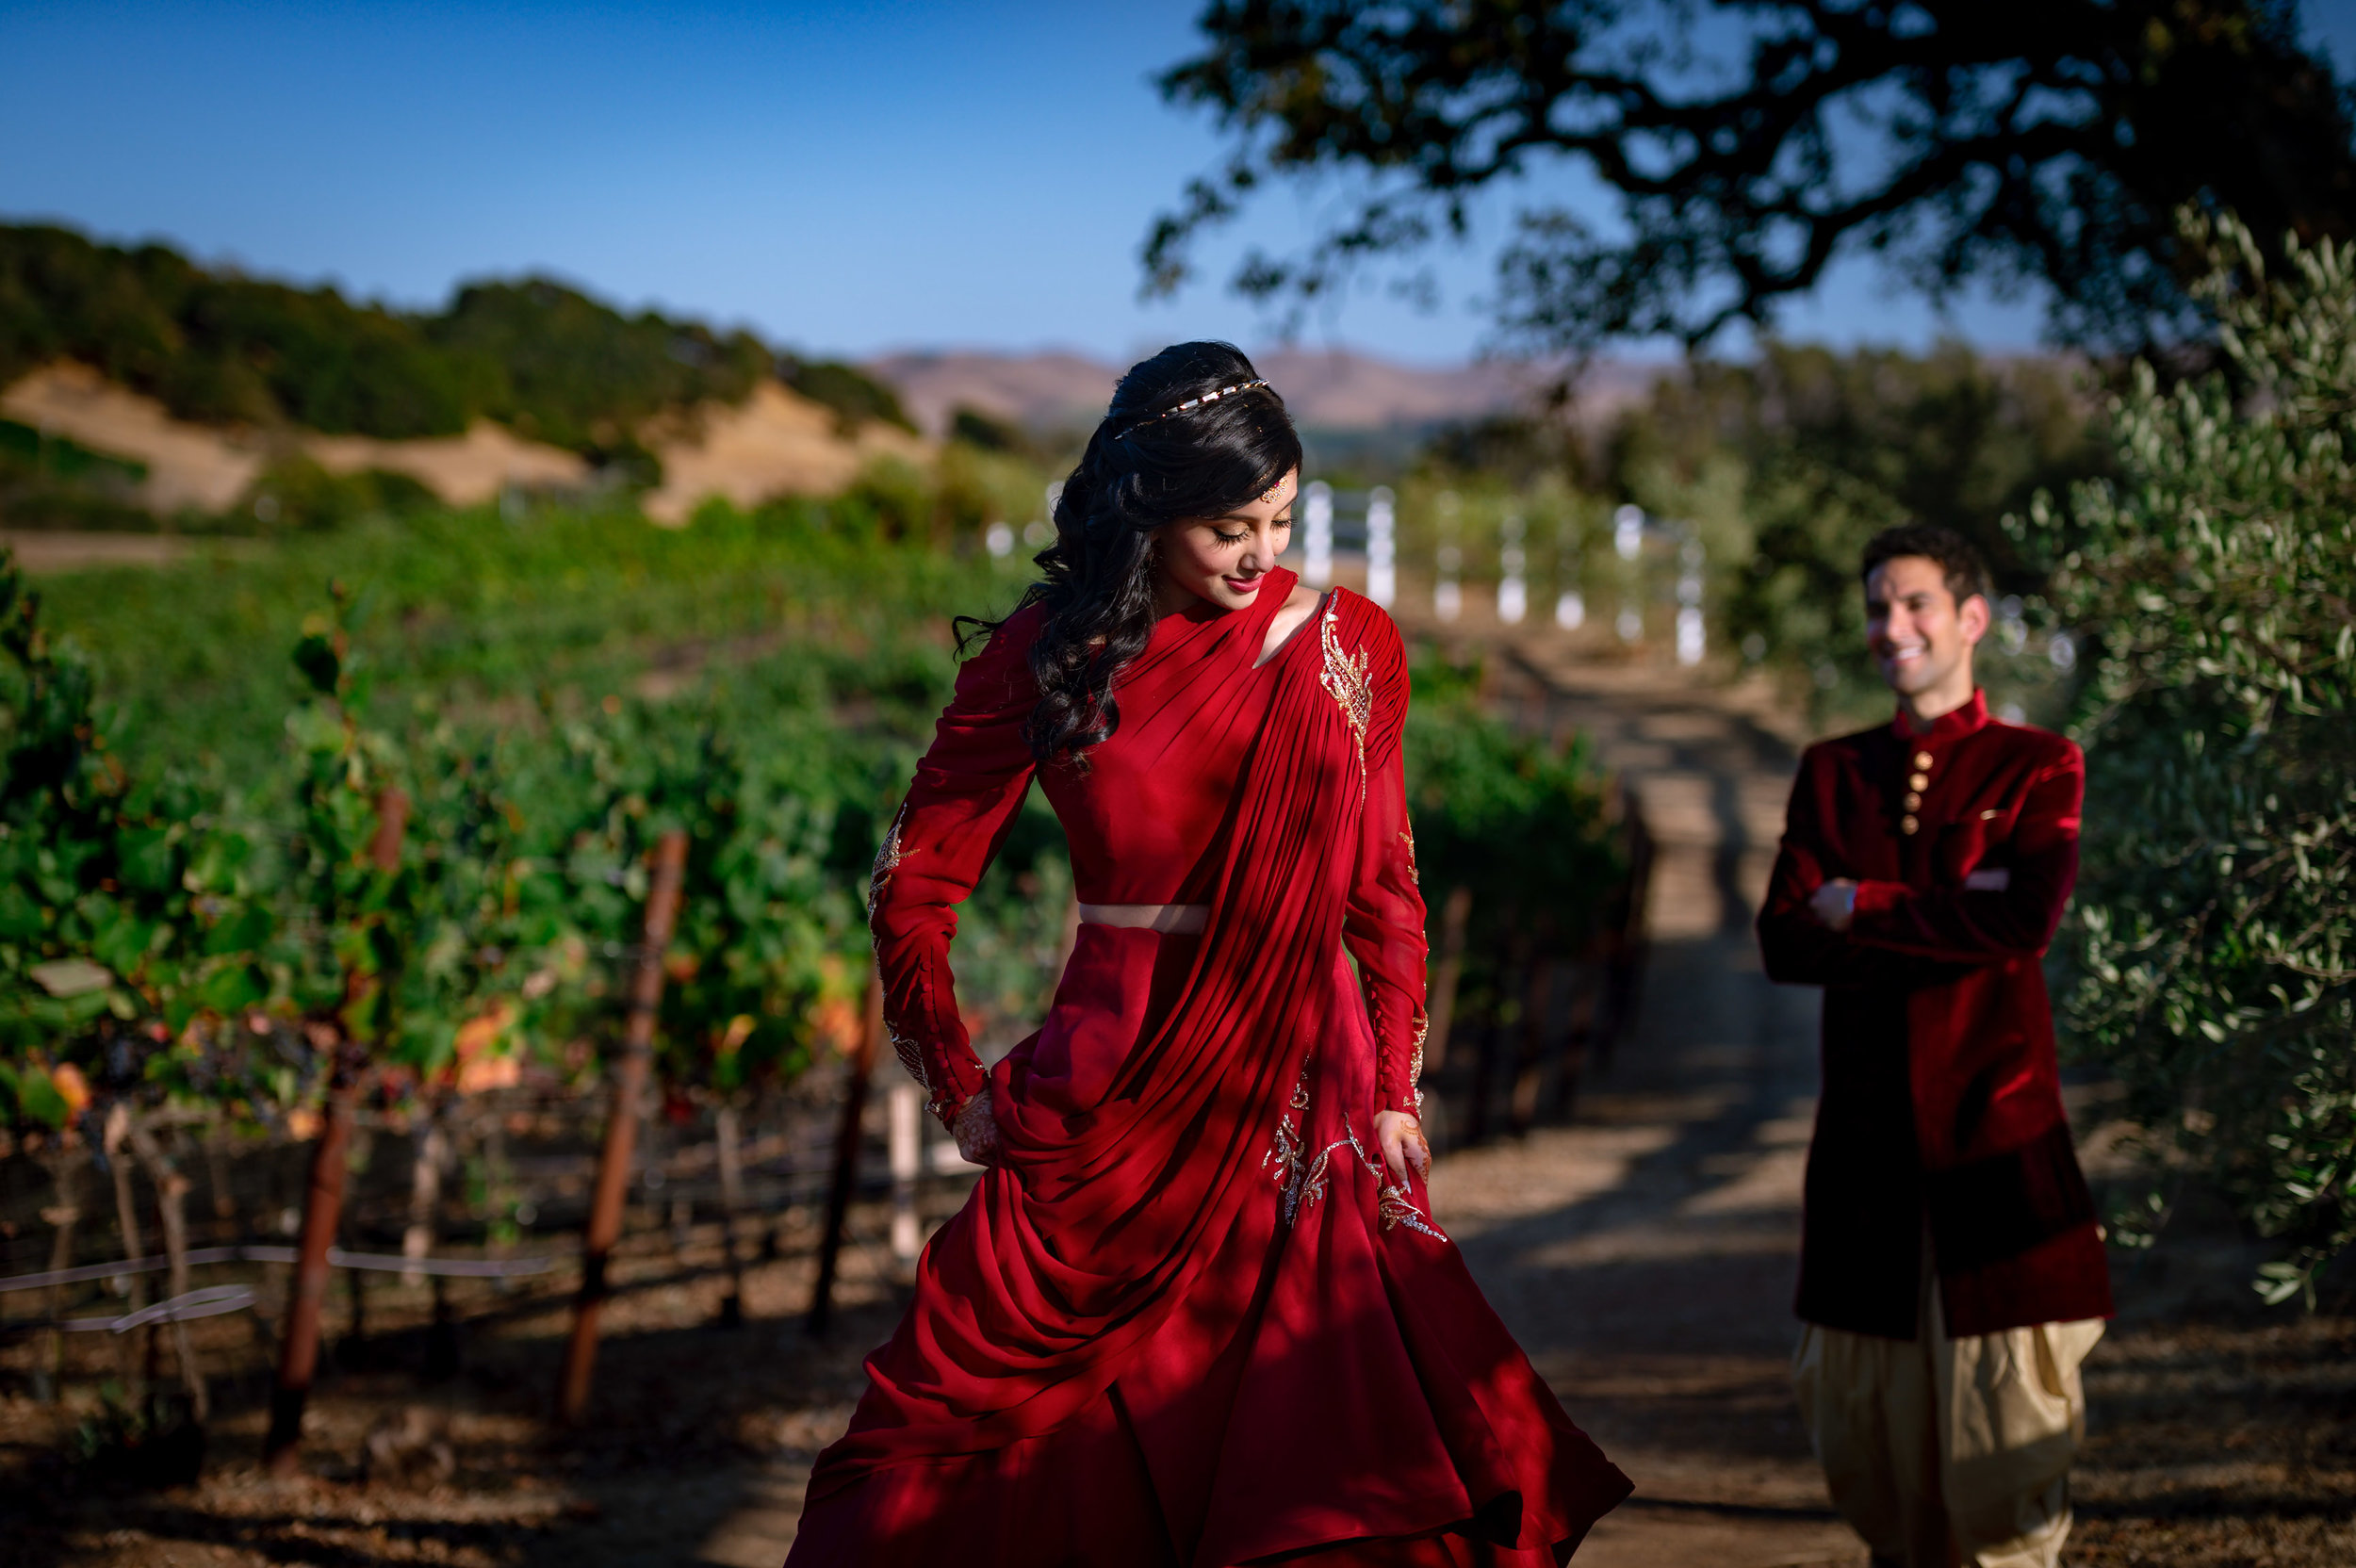 Meritage Indian wedding